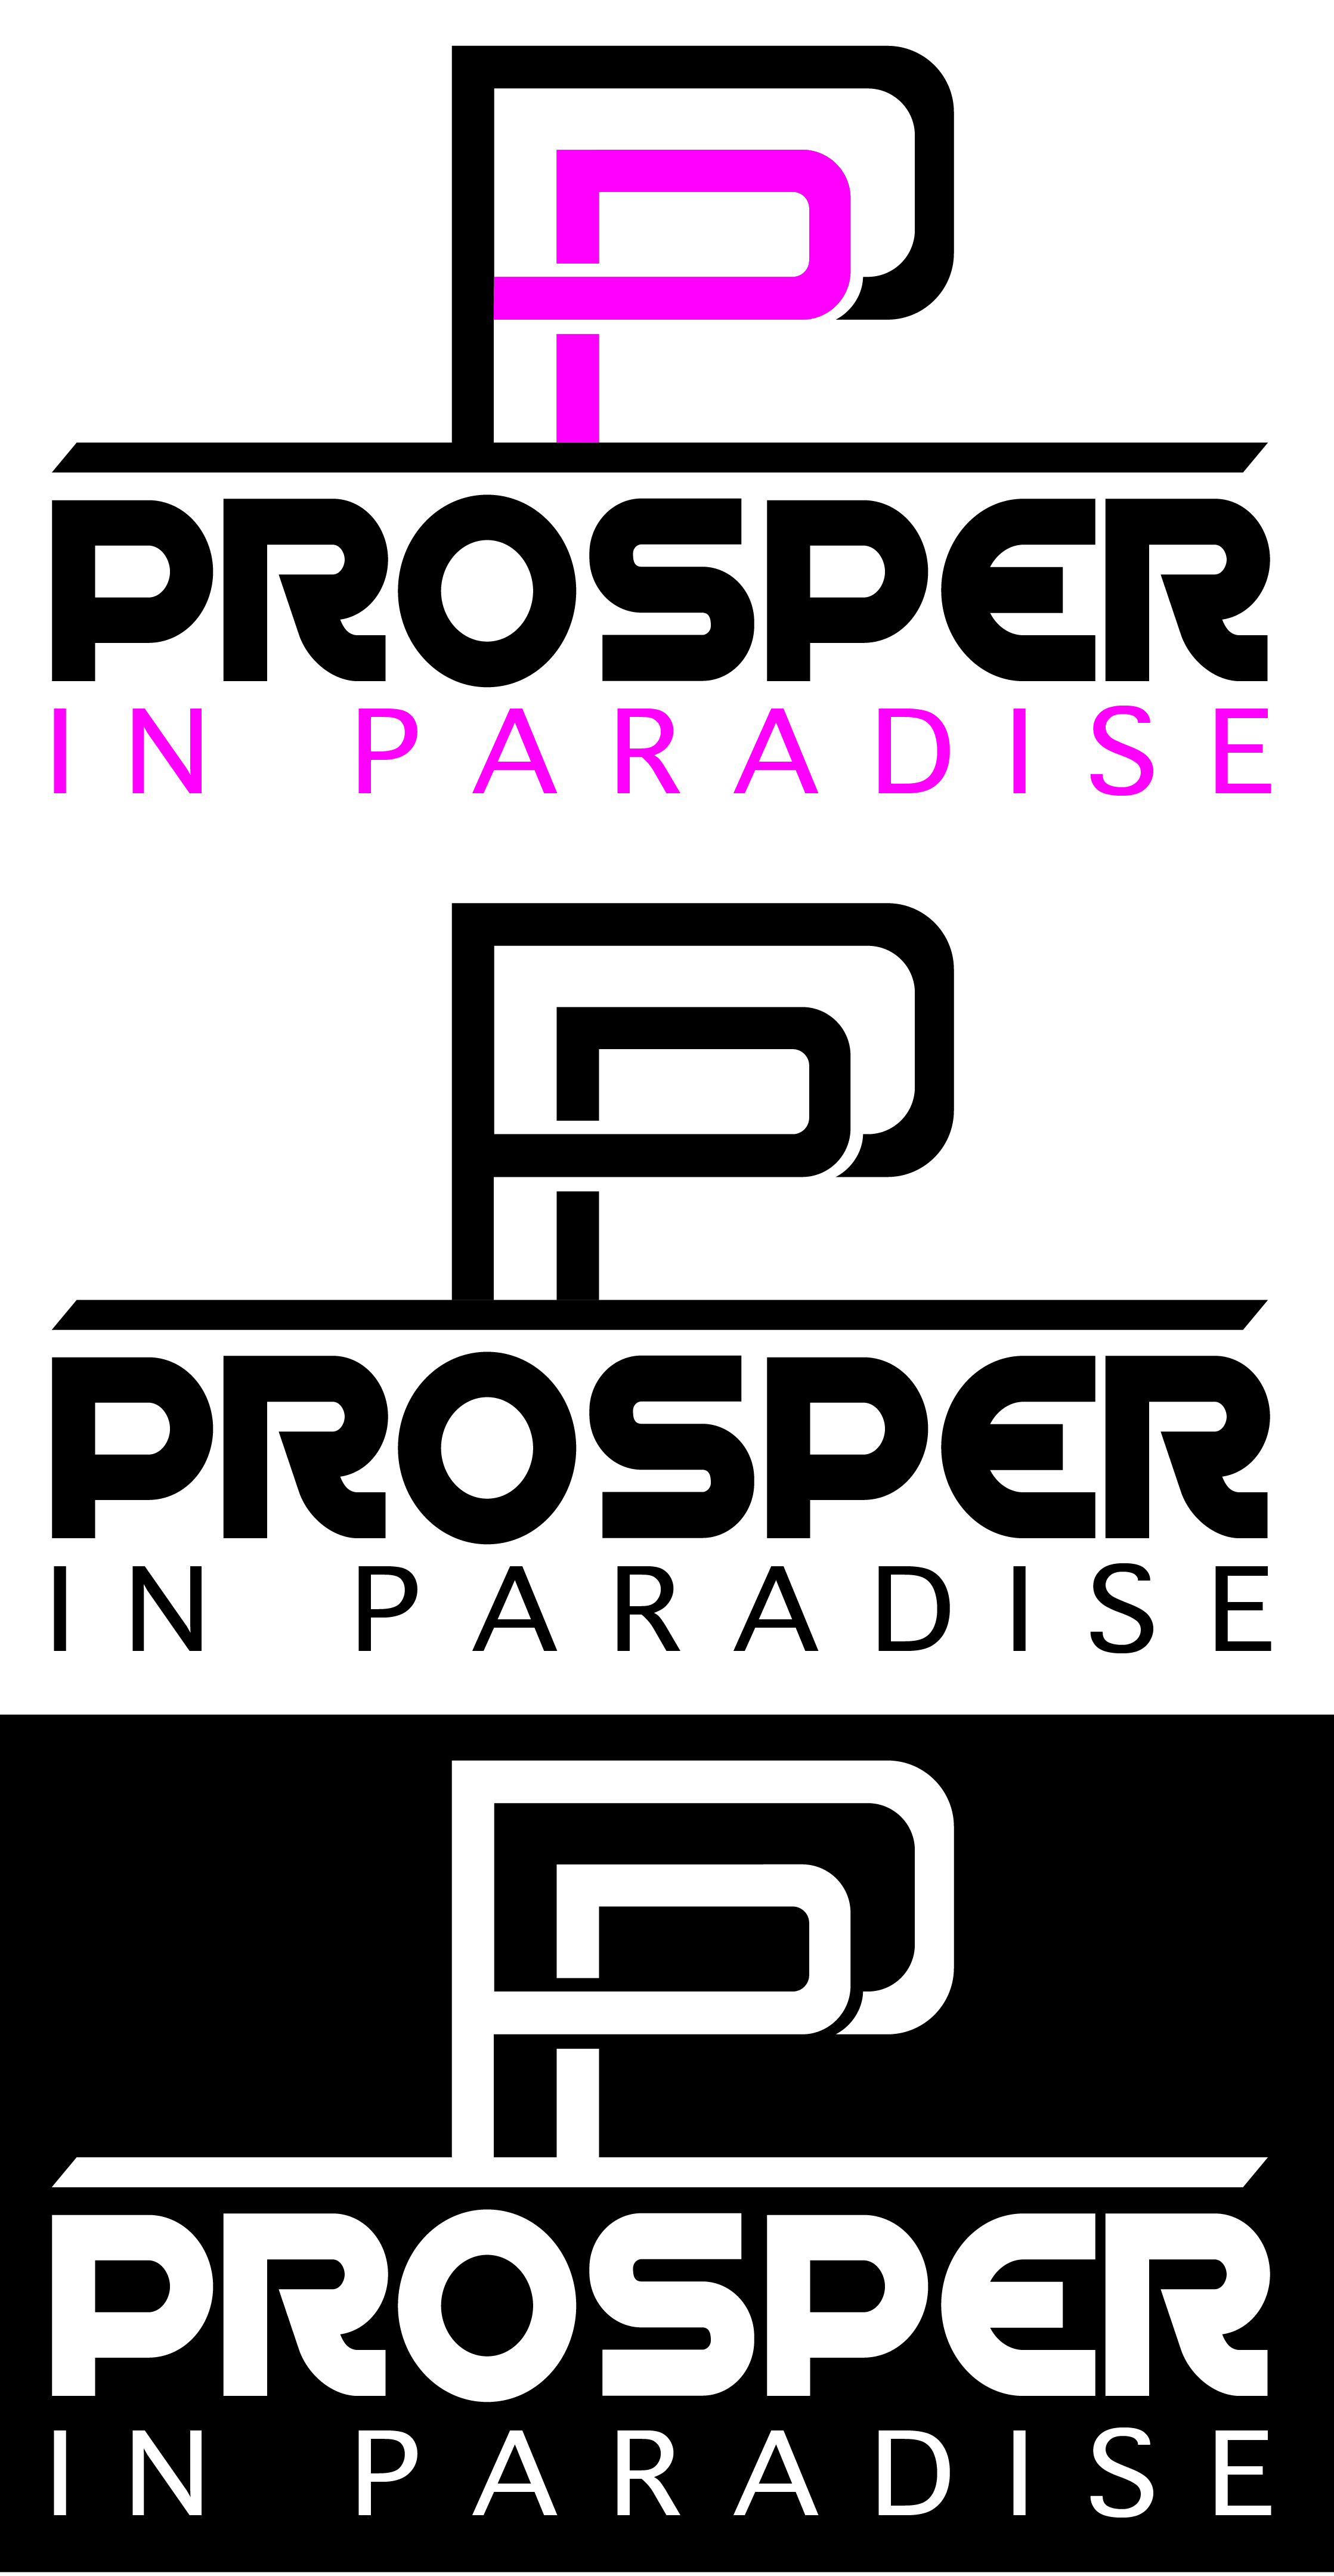 Logo Design by Rob King - Entry No. 18 in the Logo Design Contest New Logo Design for Prosper in Paradise.